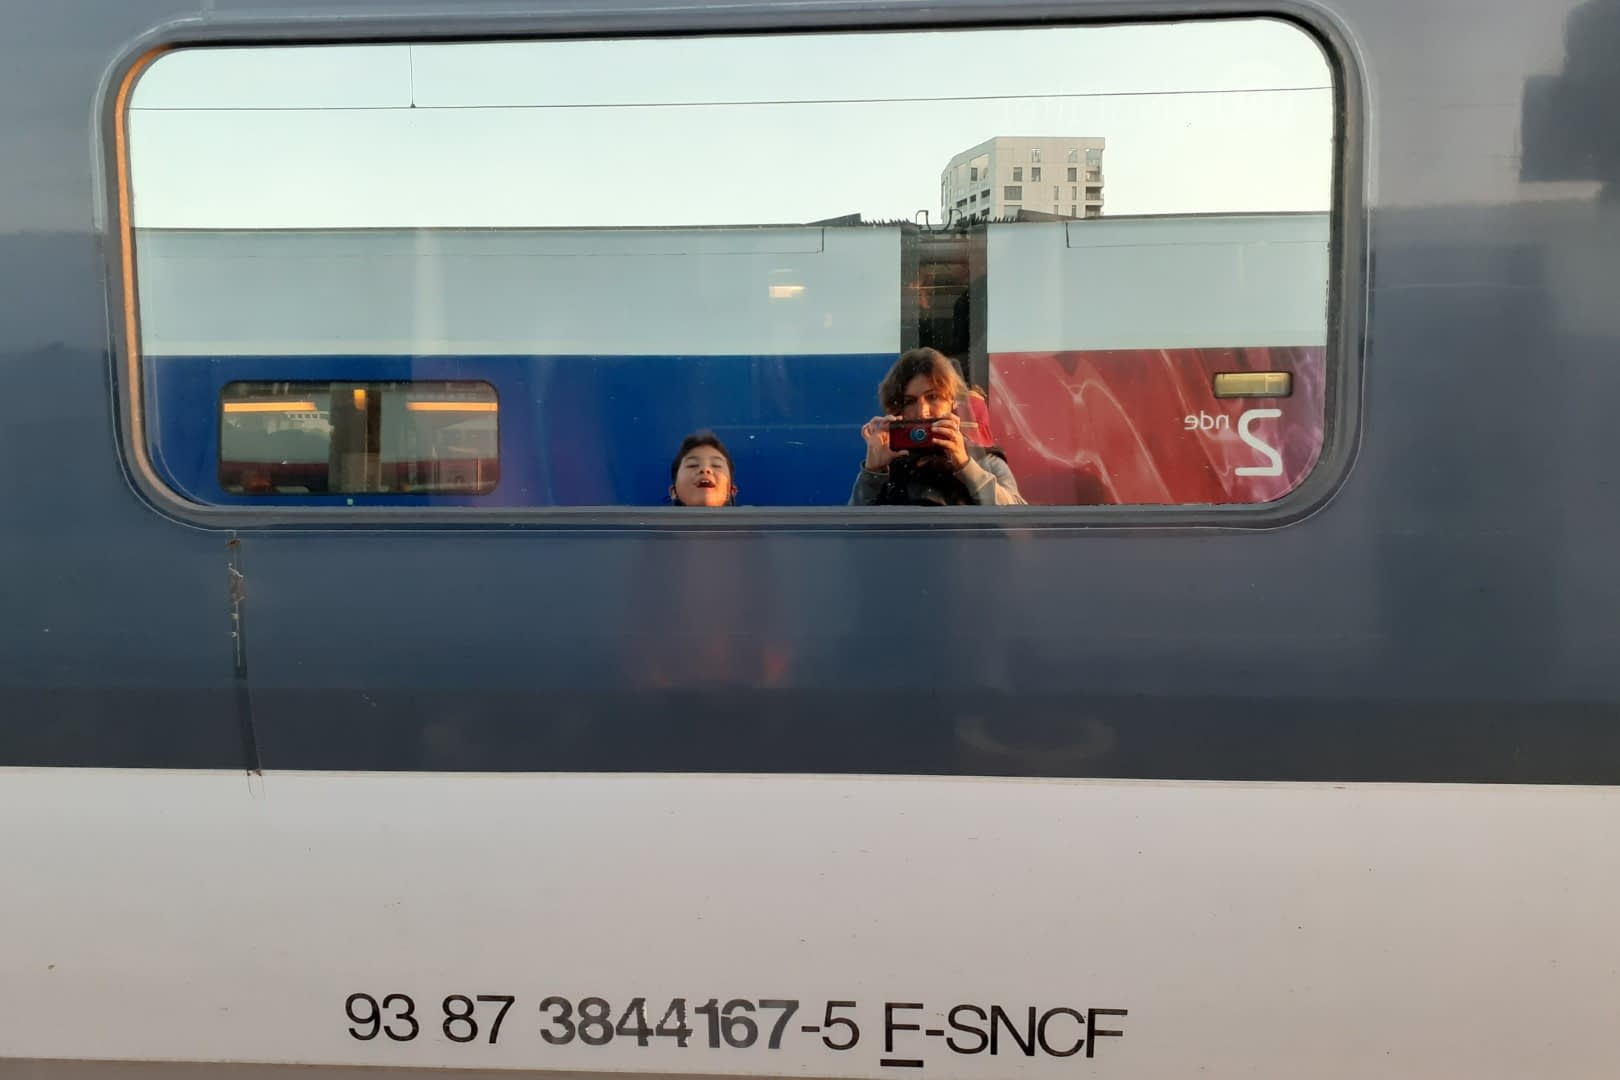 Boarding the Nantes-Charles de Gaulle aiport train